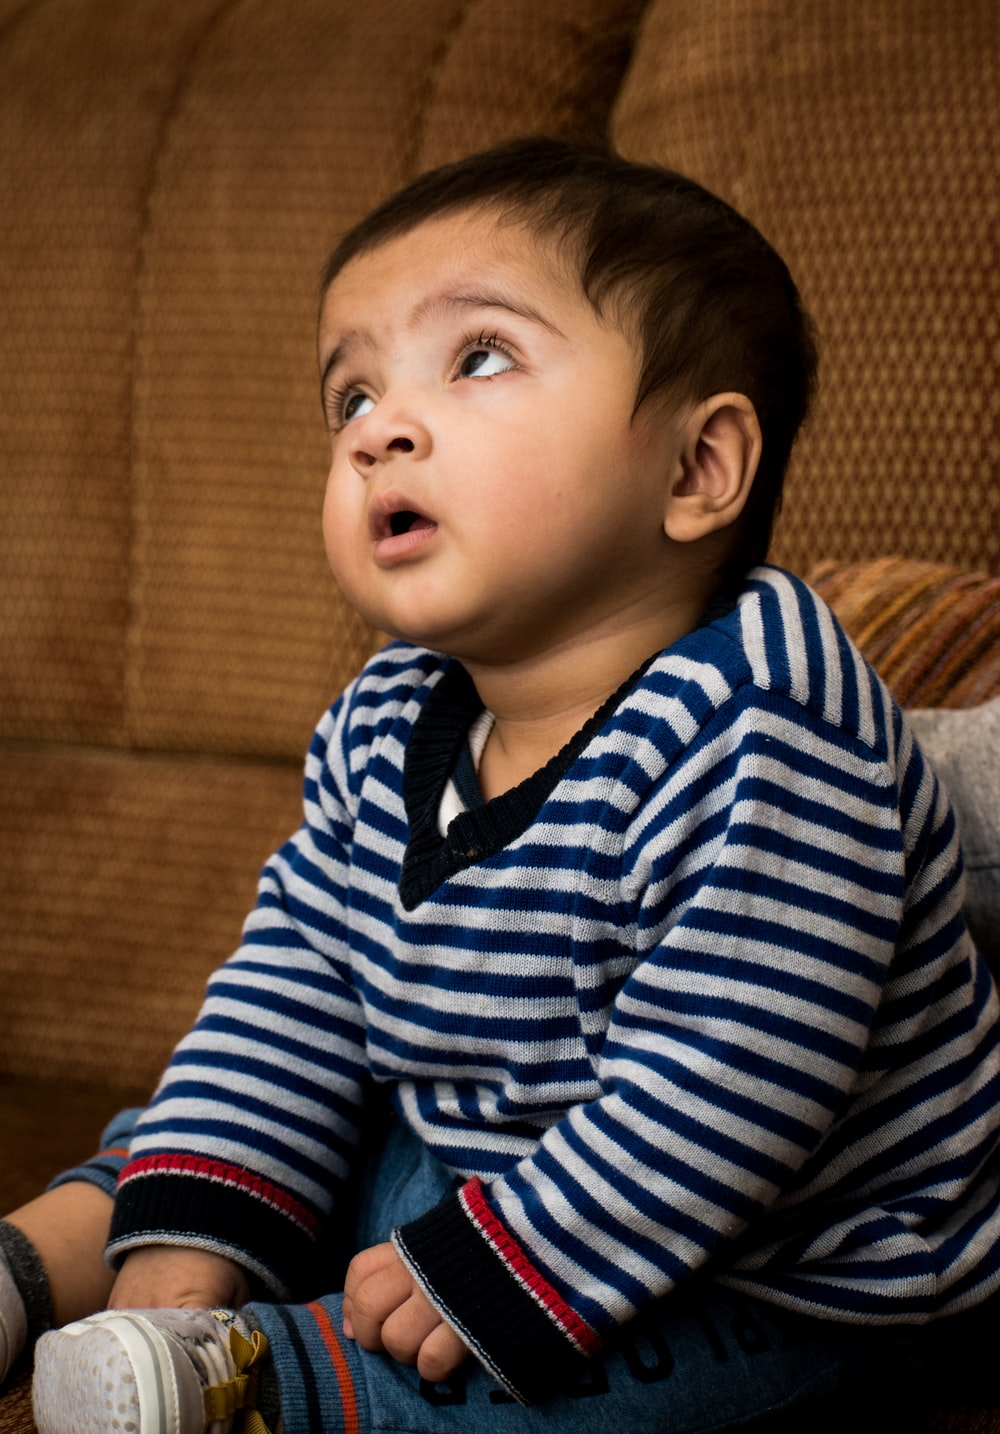 boy in blue and white striped long sleeve shirt sitting on brown sofa